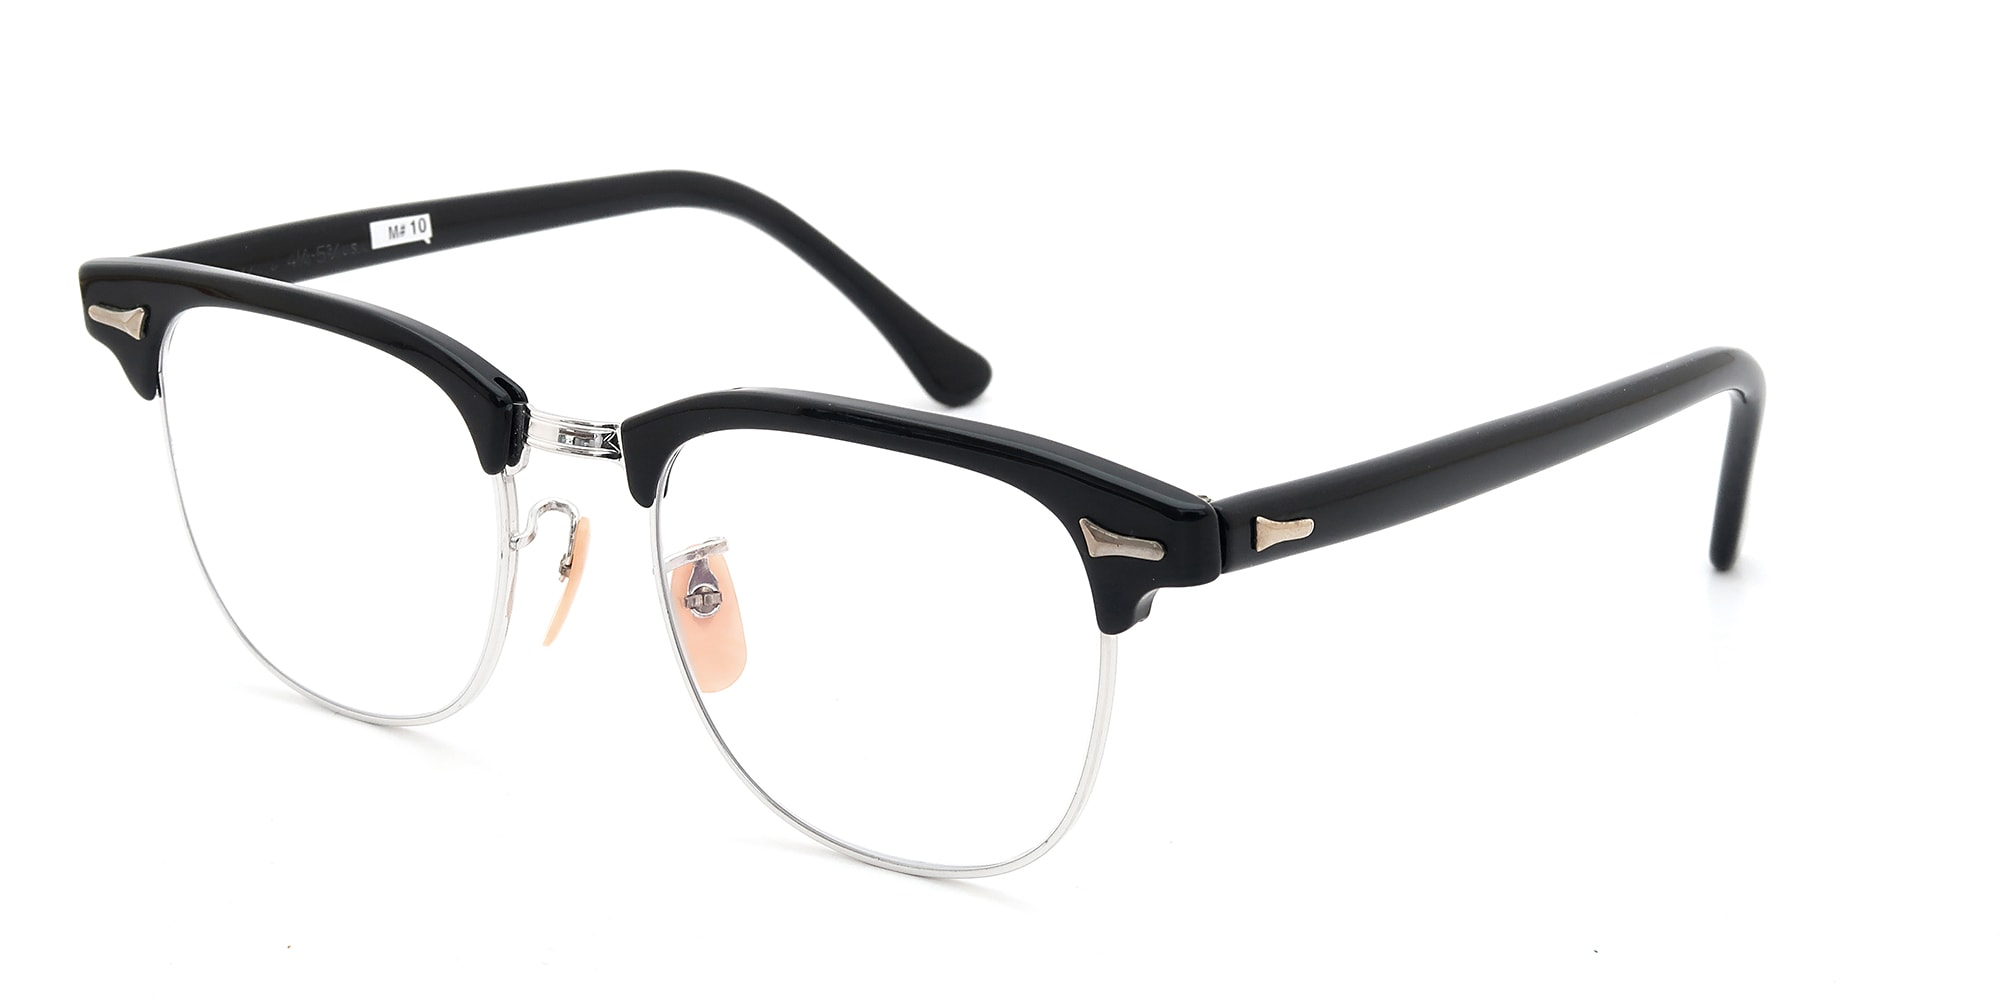 The Spectacle メガネ 1950s-60s Artcraft Optical Combination Black/WG 48-20 イメージ2